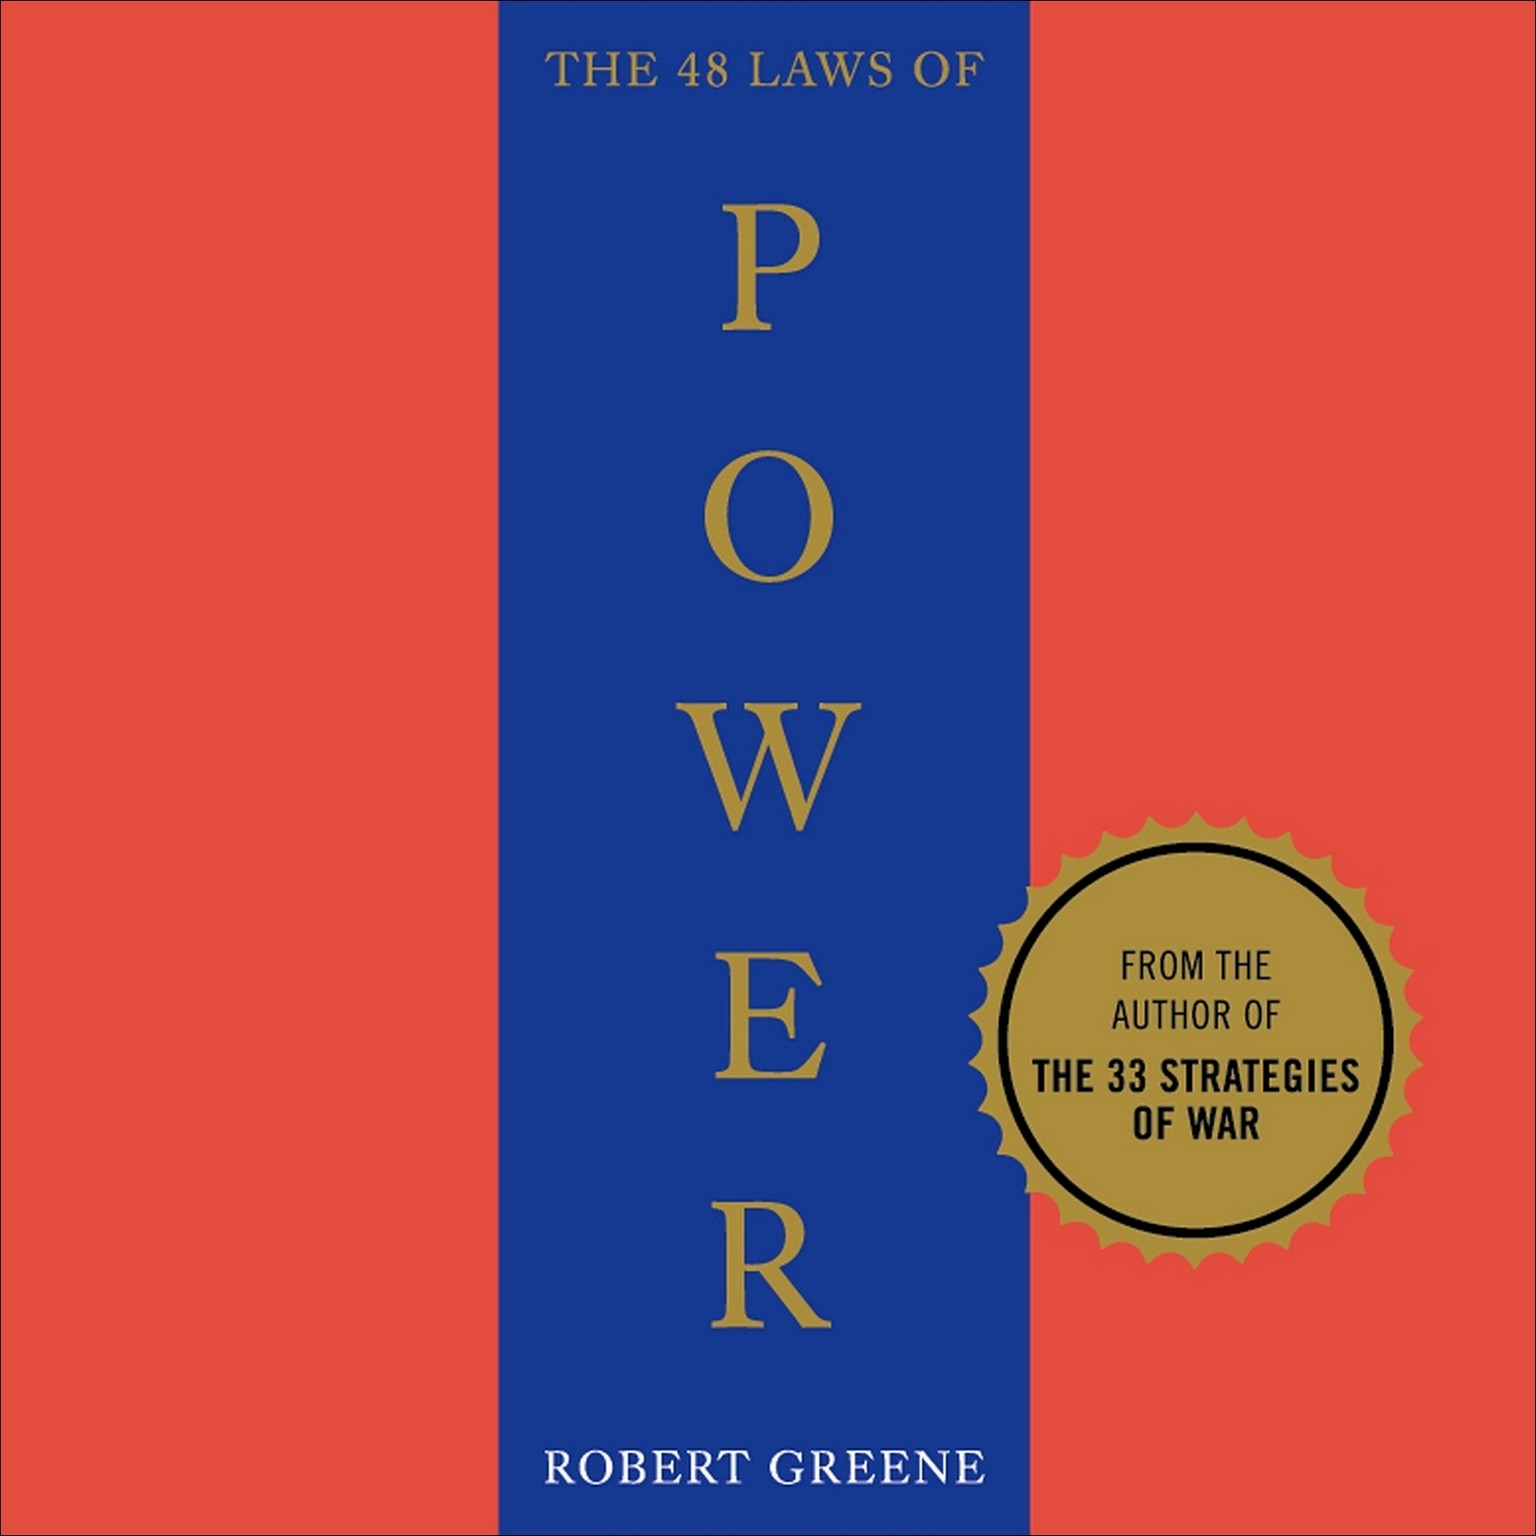 defensive tactics and power | how to apply the 48 laws of power